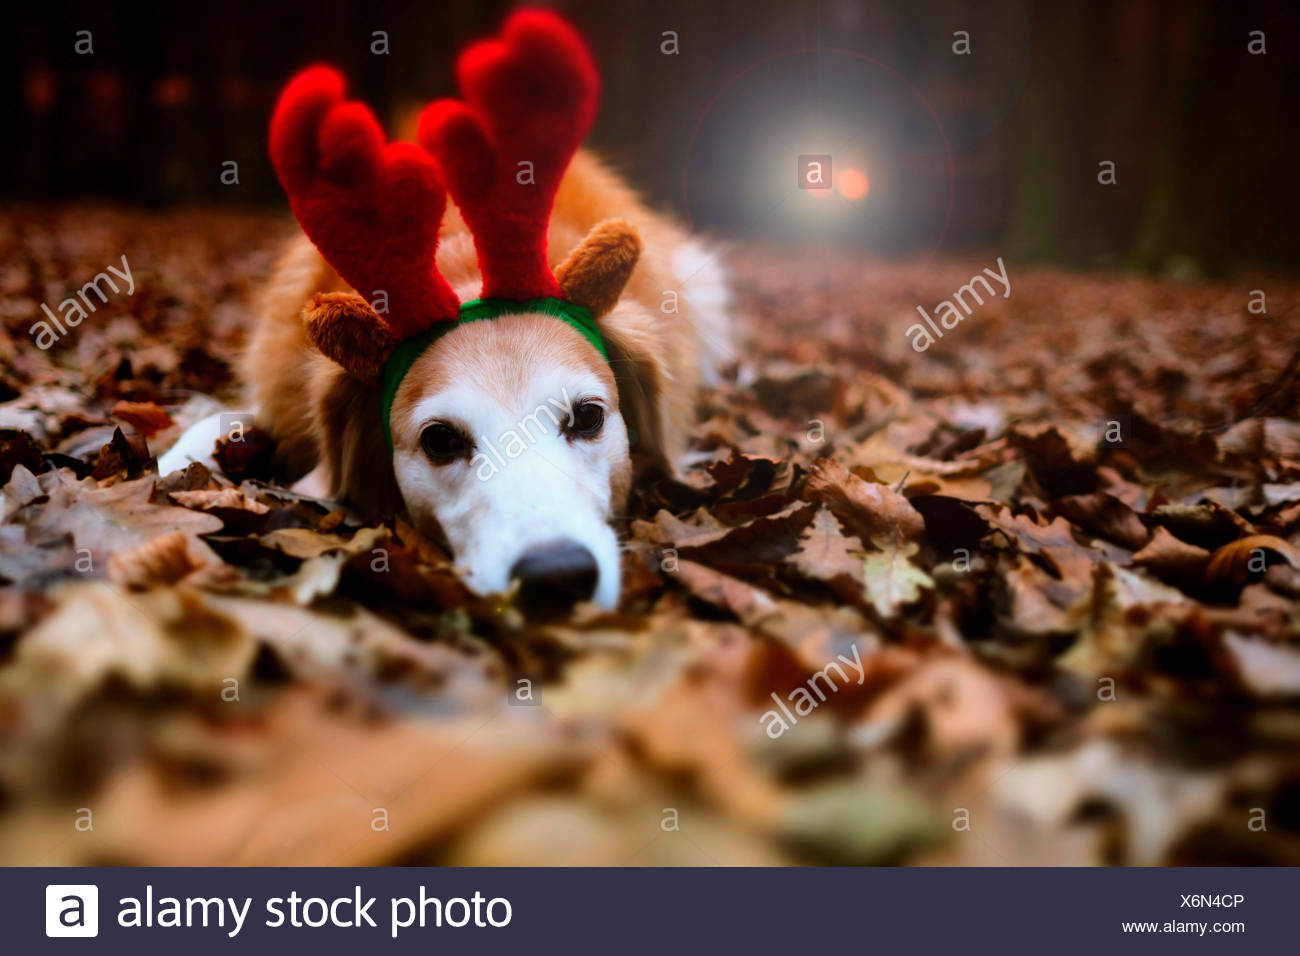 Dreaming of a White Christmas: Christmas without snow, dog with reindeer antlers - Stock Image